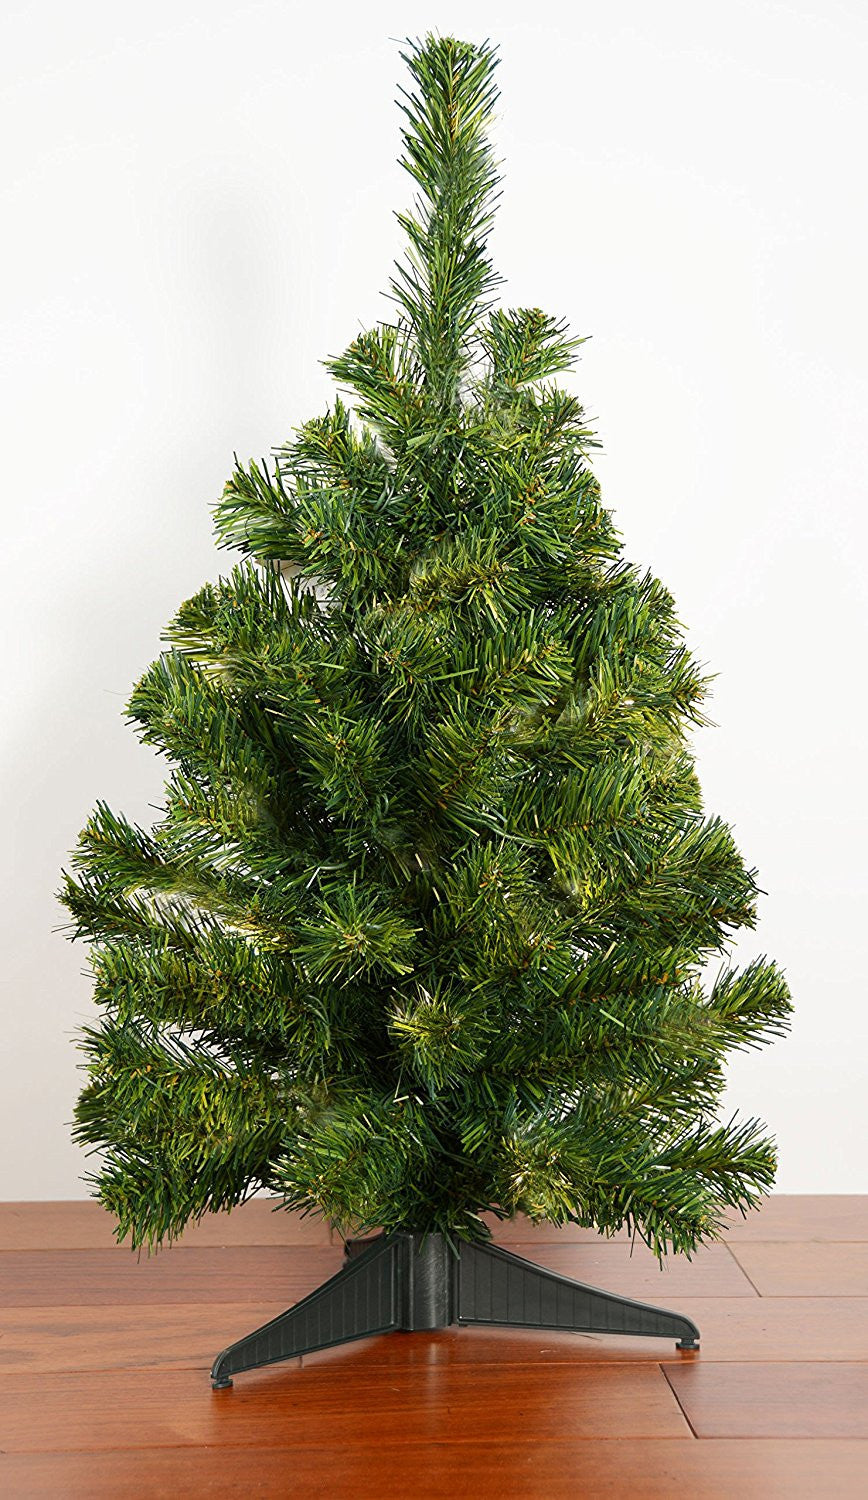 24 Inch Norway Pine Tree 2 Foot High Tabletop Christmas Pine Tree